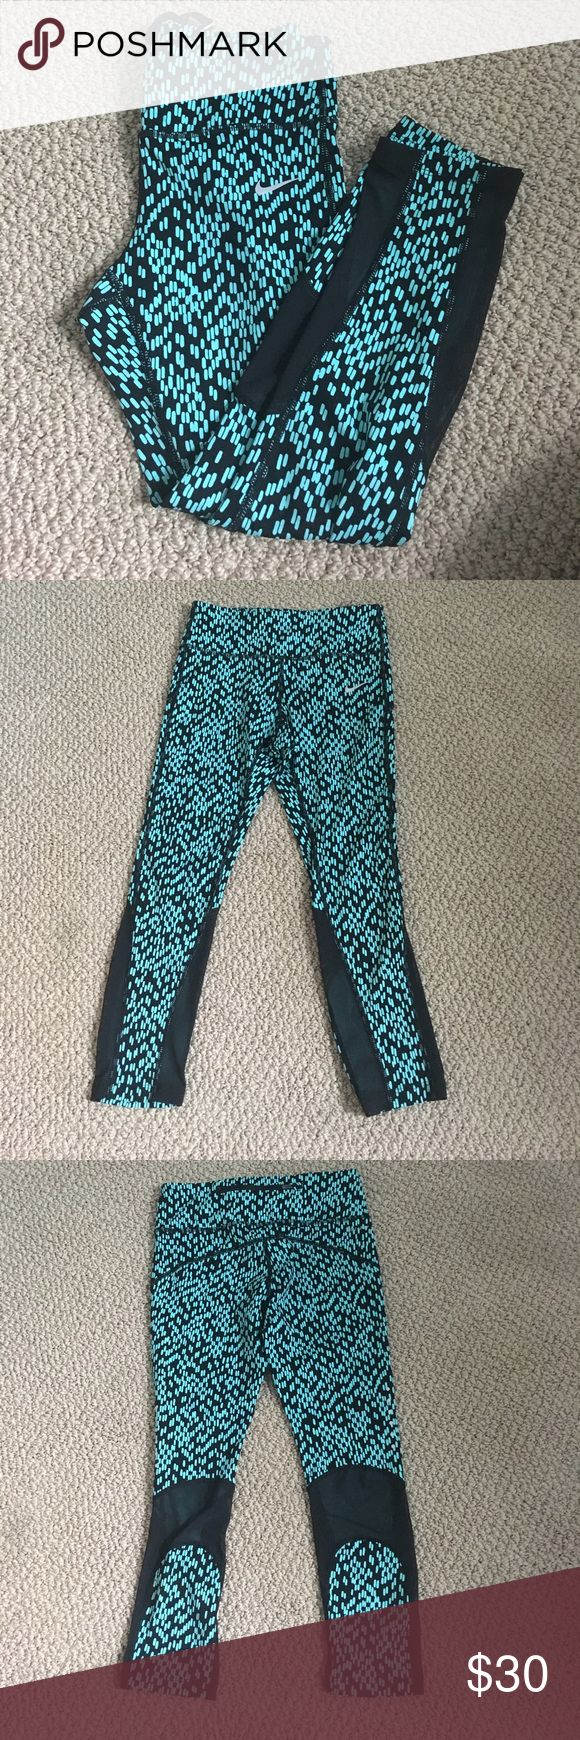 NWOT Nike cropped epic run running leggings These nike leggings have never been worn just nwot. They are in perfect condition. They have a blue and black pattern on them. They have mesh cut outs toward the bottom of the leggings. They are size XS Nike Pants Leggings